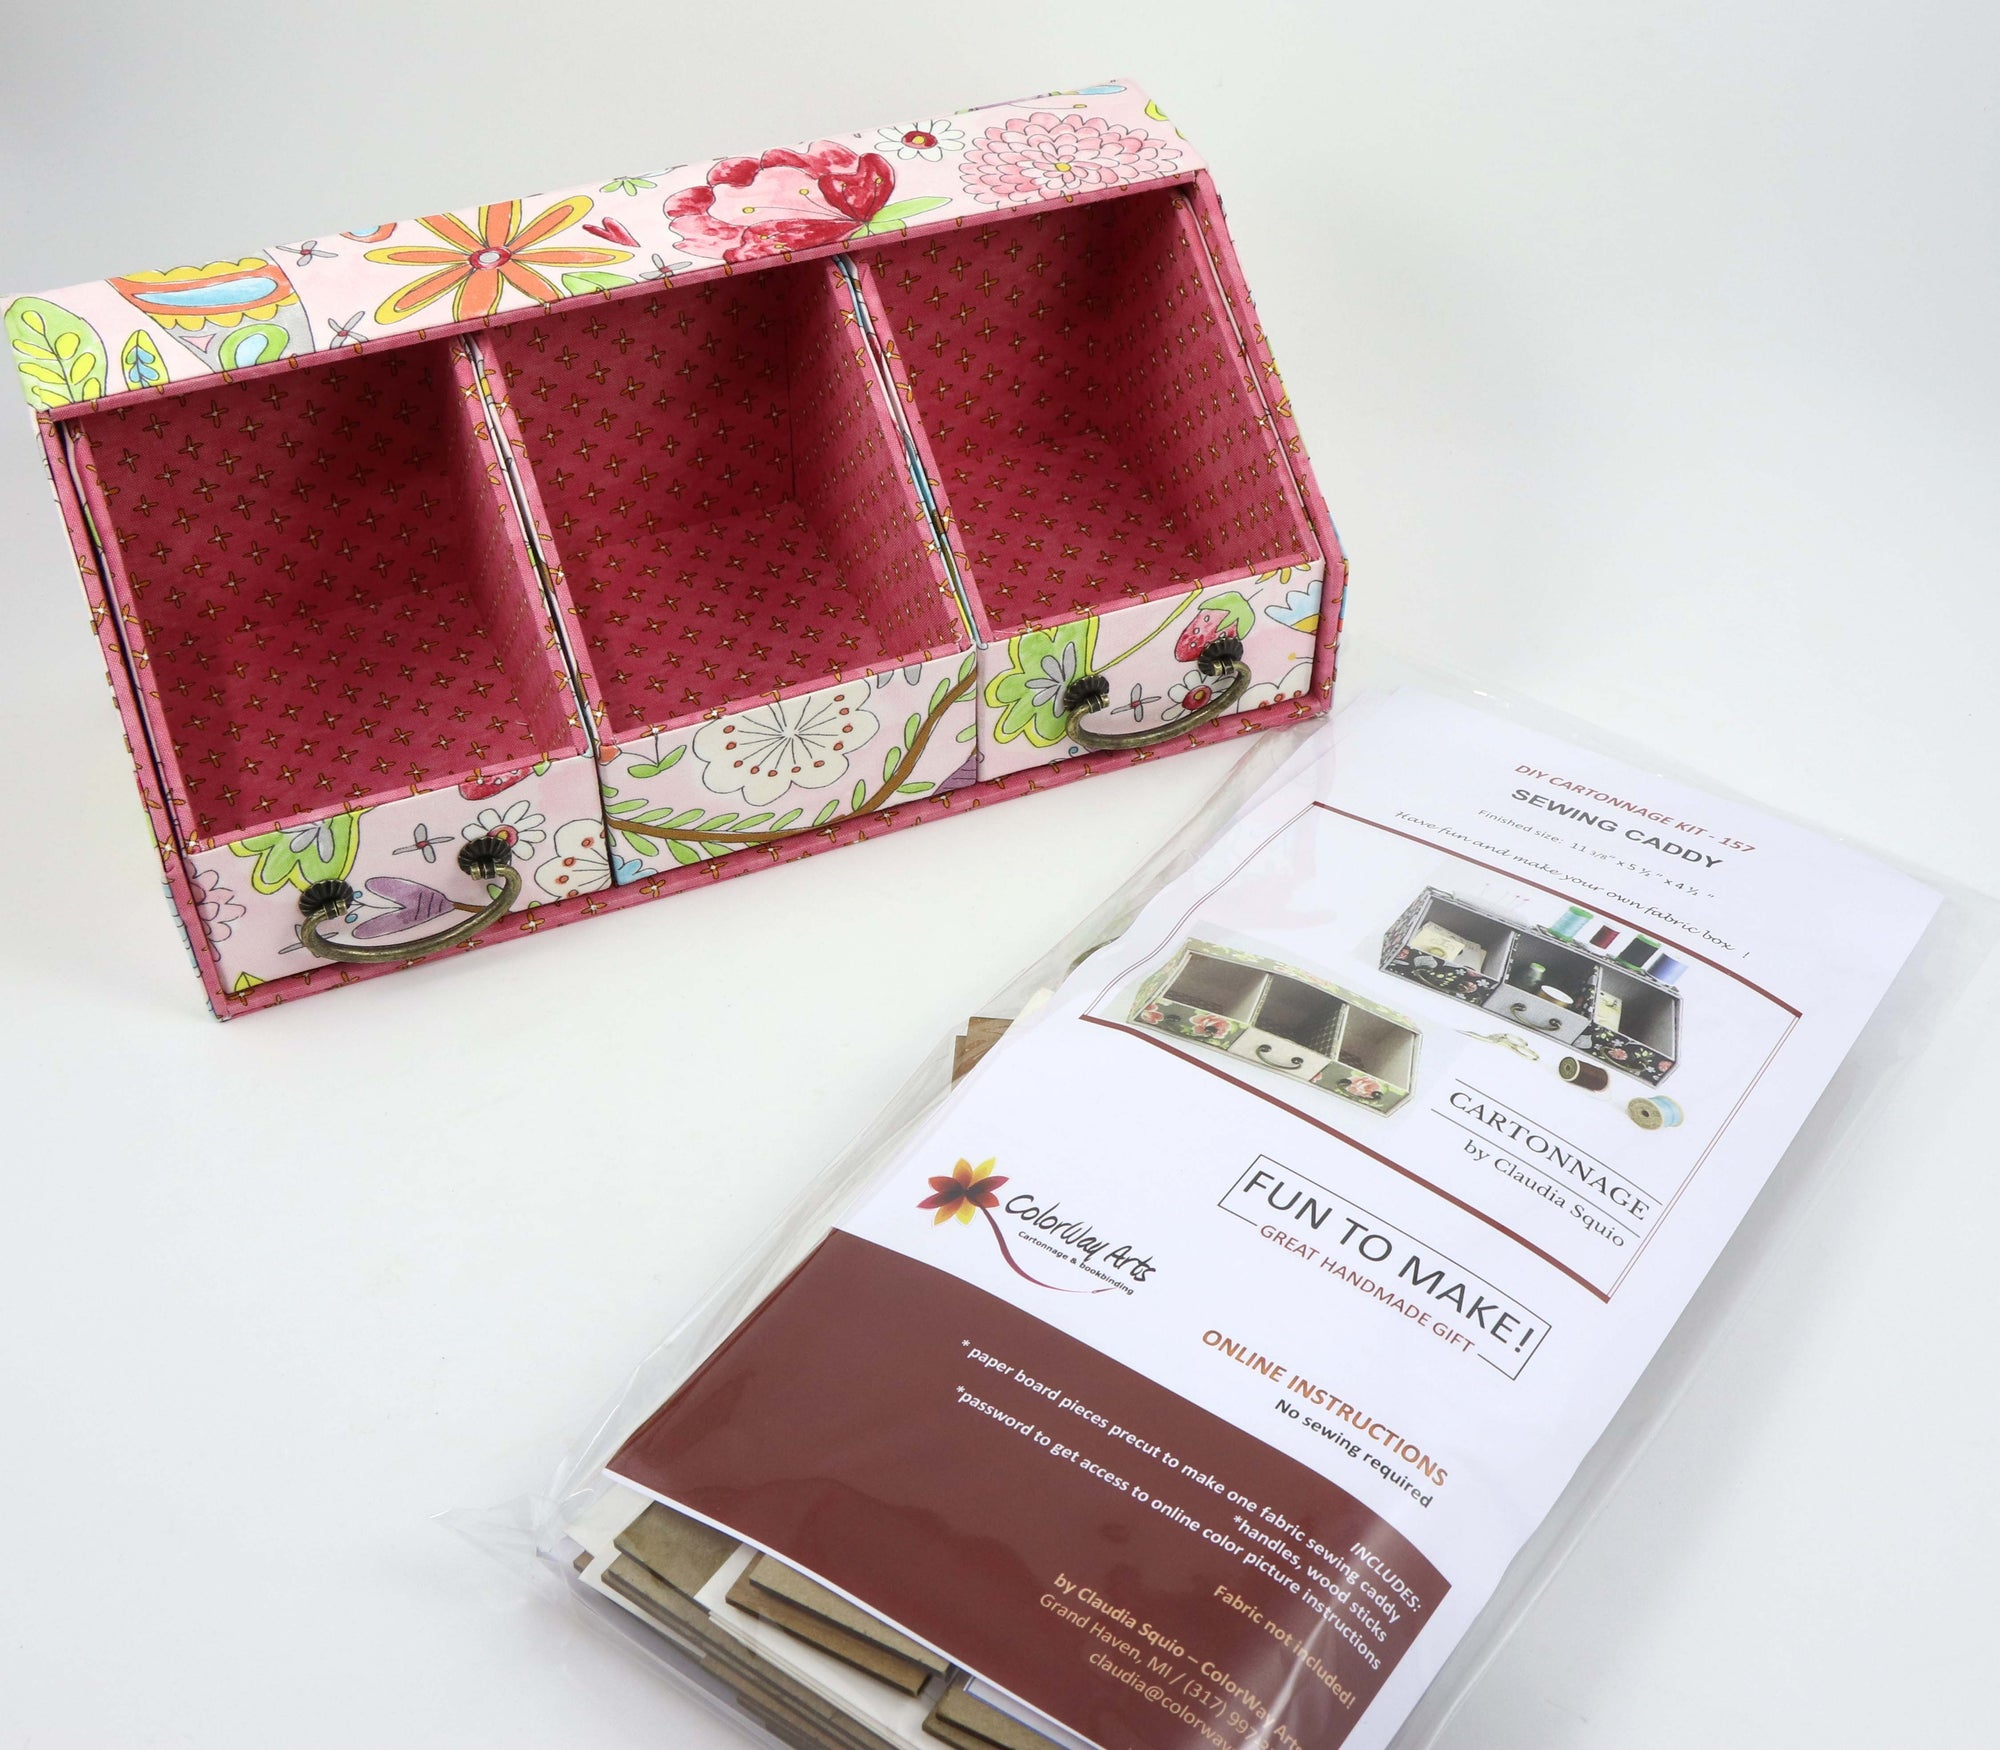 Fabric Sewing caddy DIY kit, cartonnage kit 157, Online instructions included - Colorway Arts